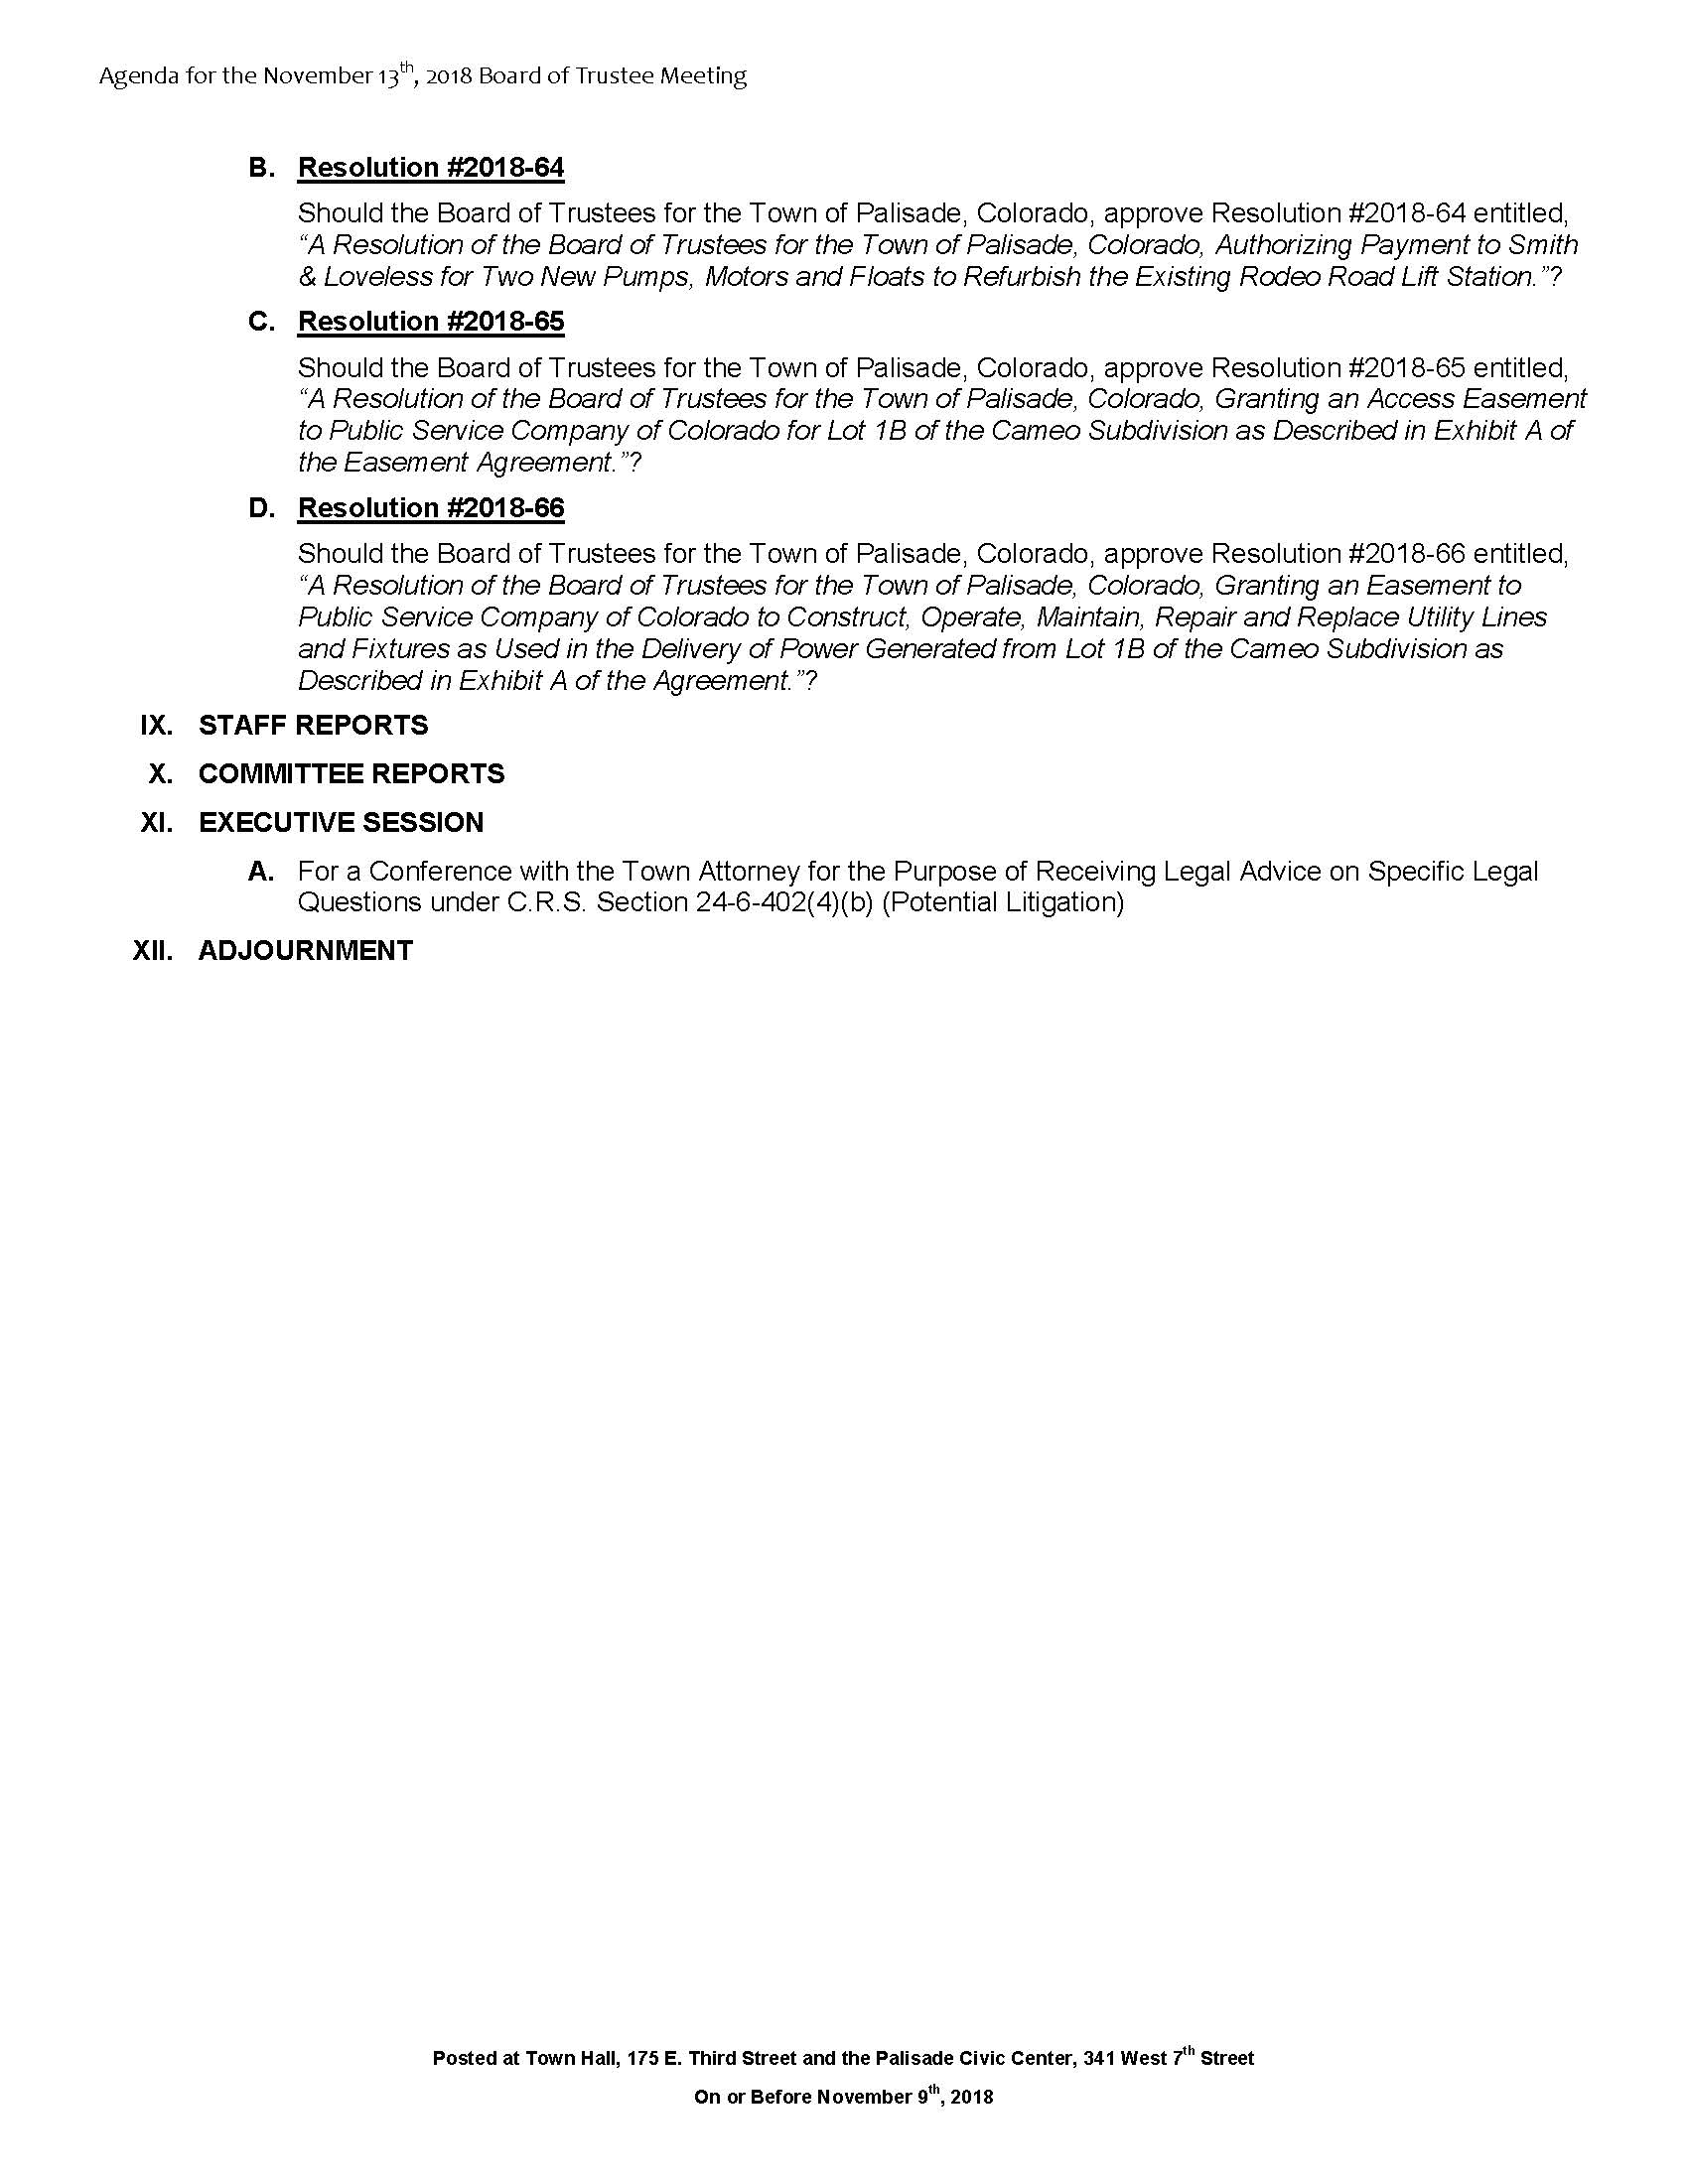 November 13th 2018 Board Meeting Agenda Page 2